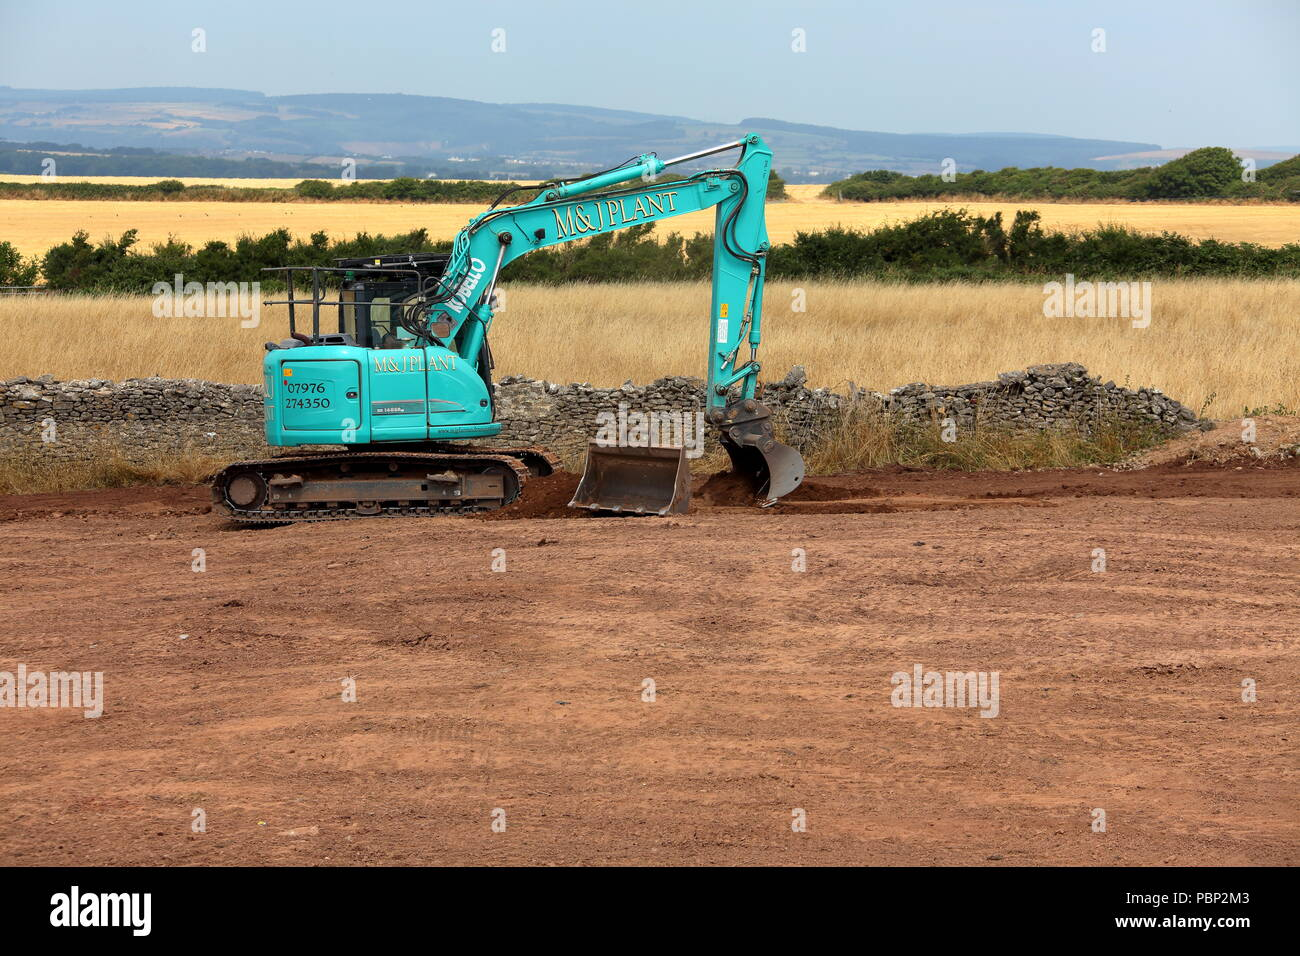 A newly commisioned large tracked digger levelling off the earth in a newly restored field before being returned to the farmer. - Stock Image